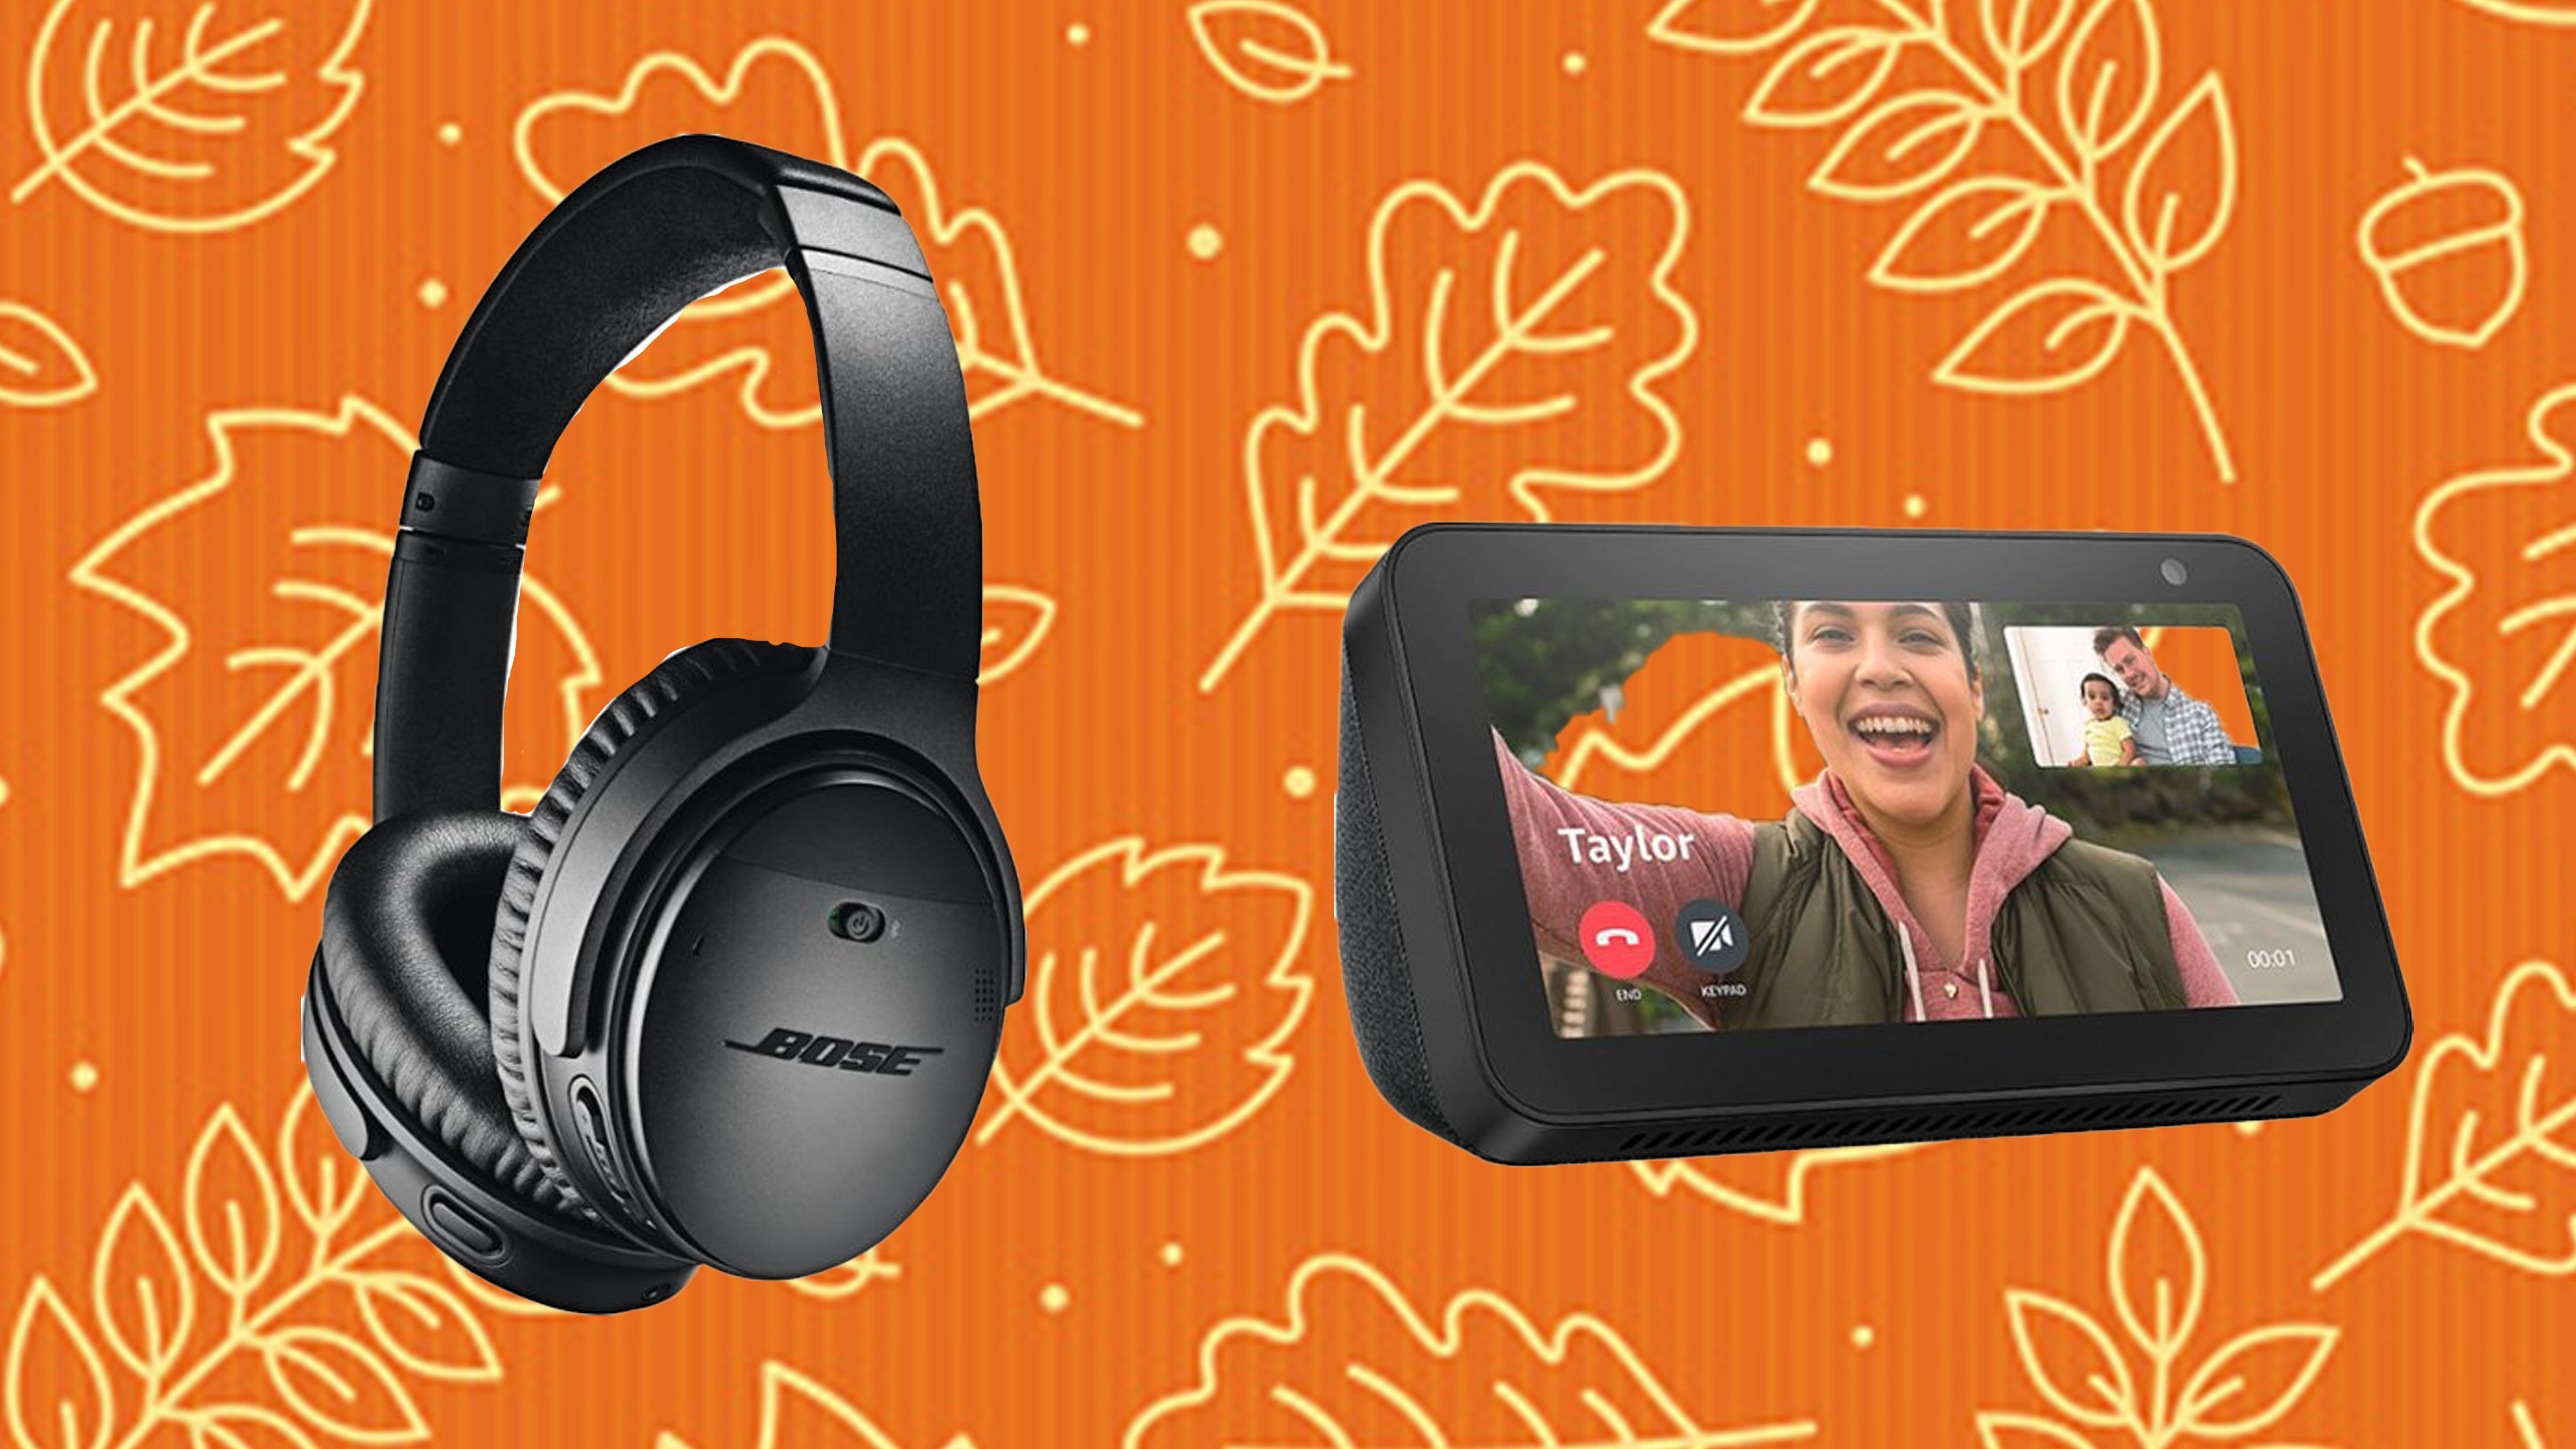 The best deals from the Best Buy Black Friday preview